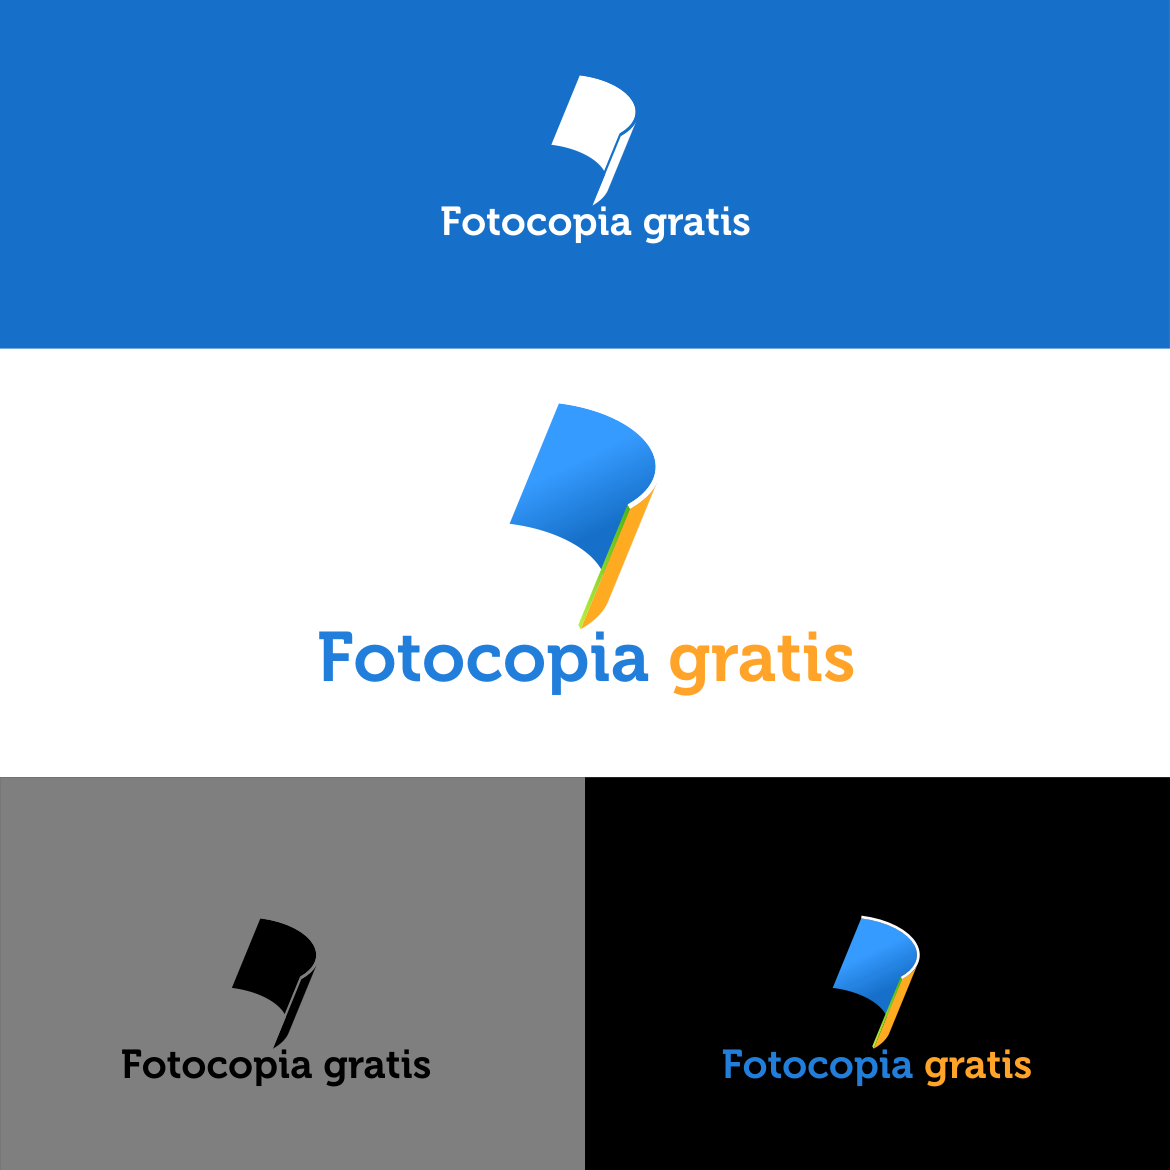 Logo Design by rifatz - Entry No. 67 in the Logo Design Contest Inspiring Logo Design for Fotocopiagratis.